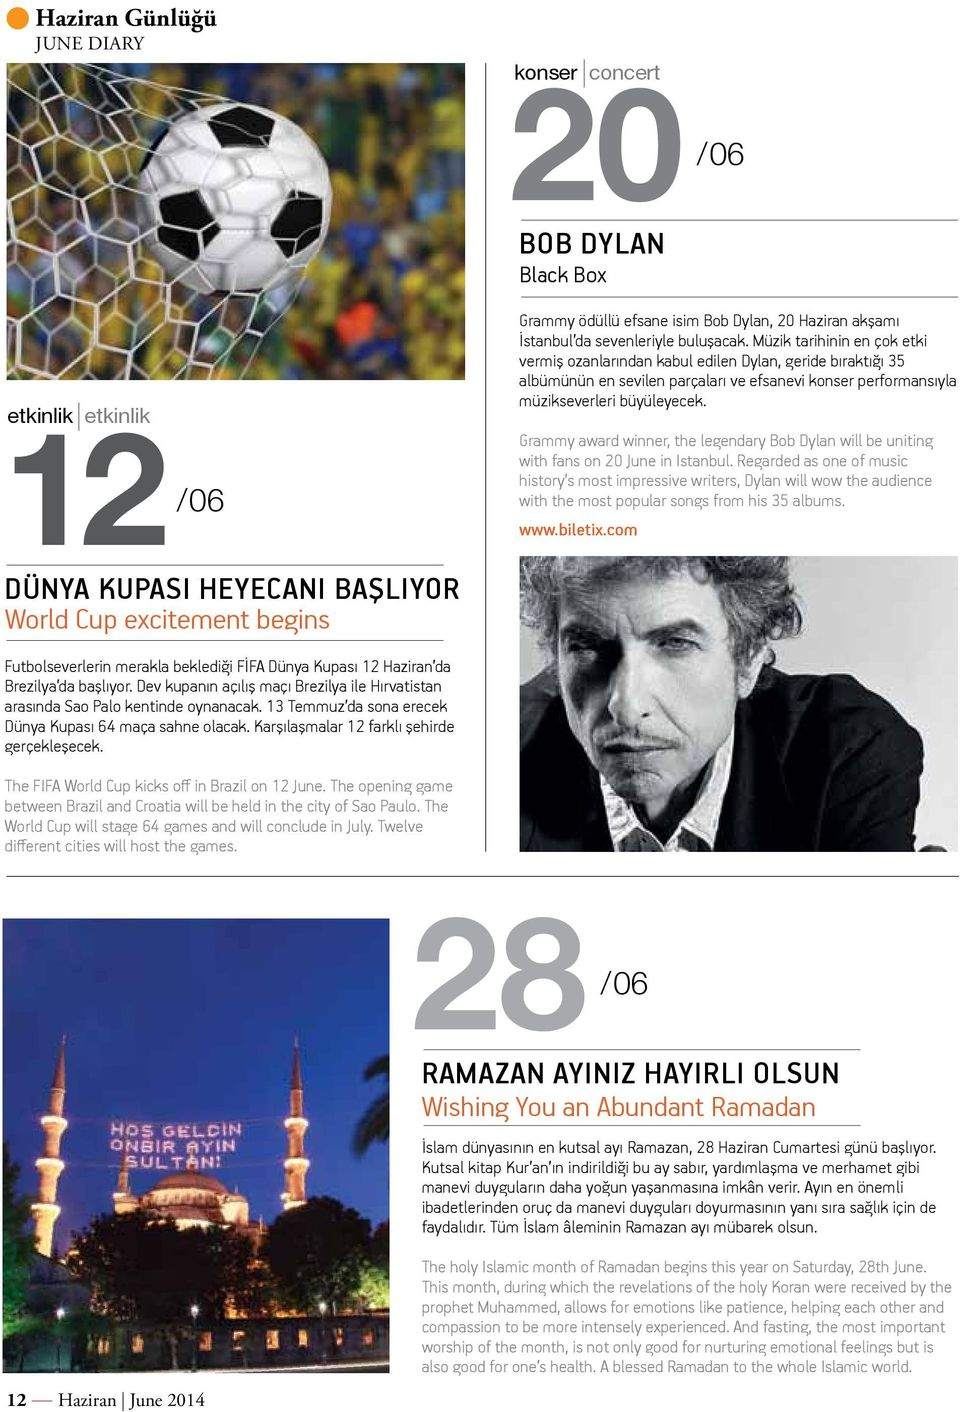 Grammy award winner, the legendary Bob Dylan will be uniting with fans on 20 June in Istanbul.